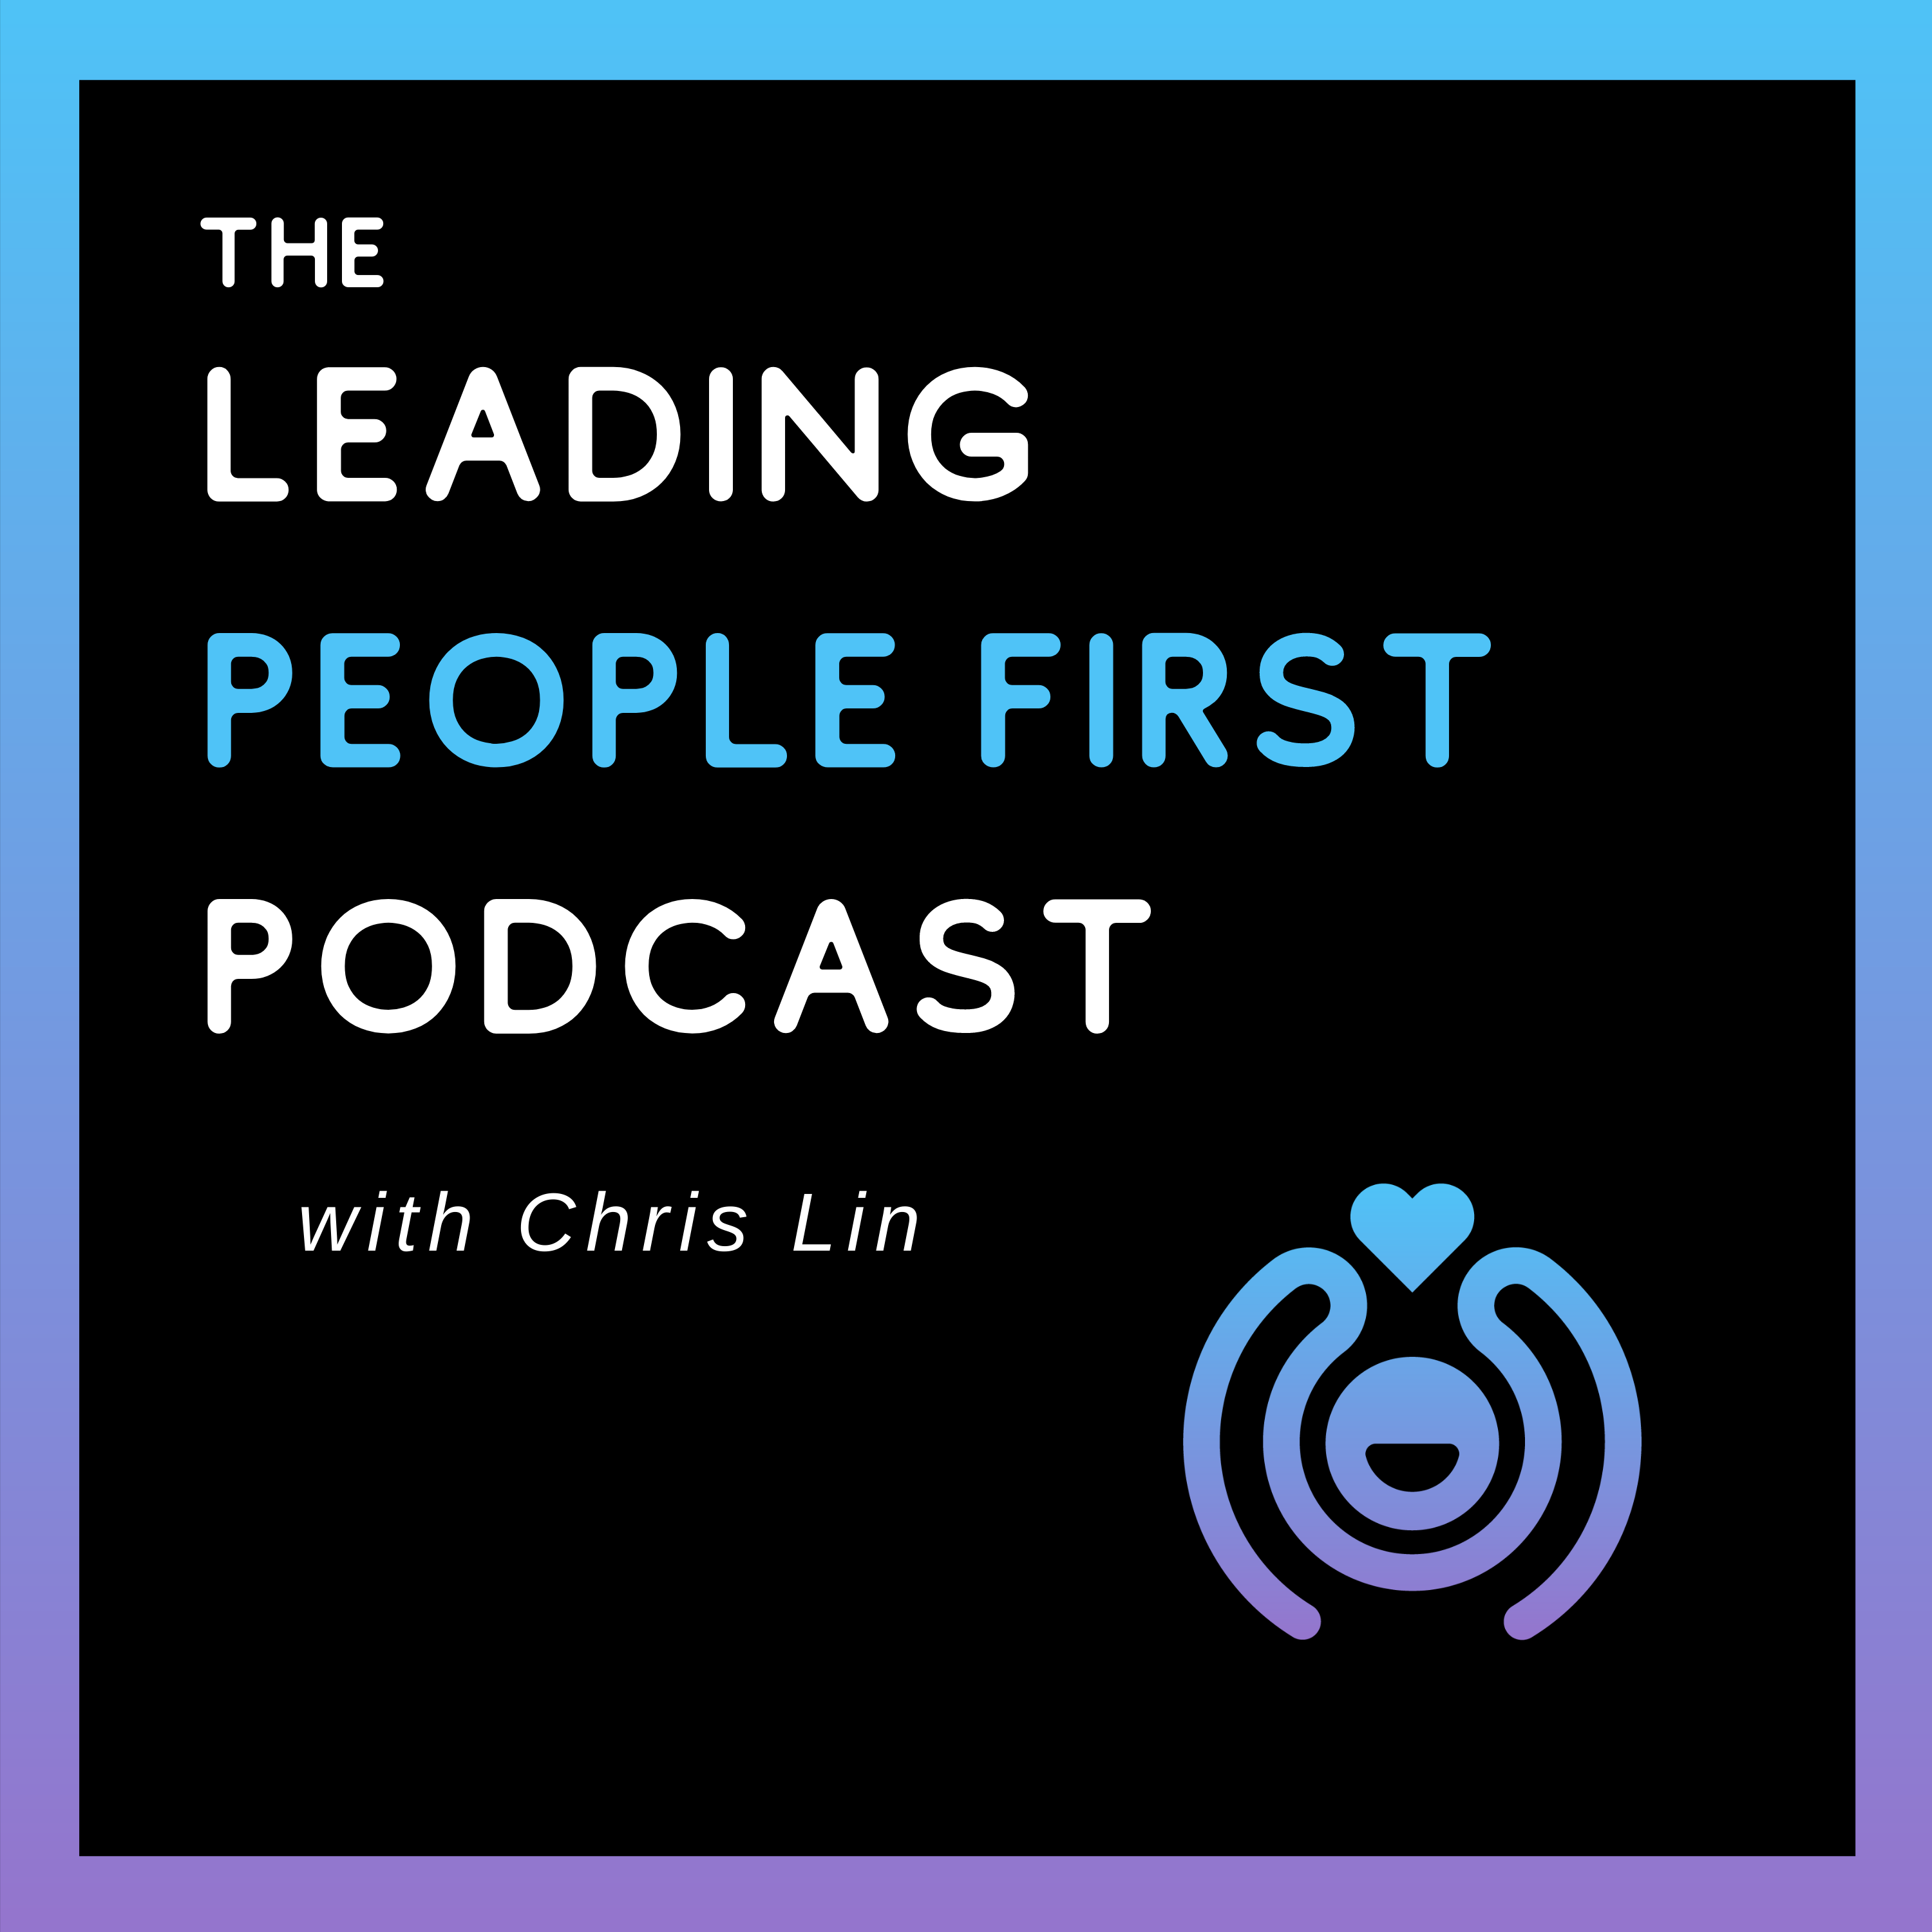 Artwork for podcast Leading People First